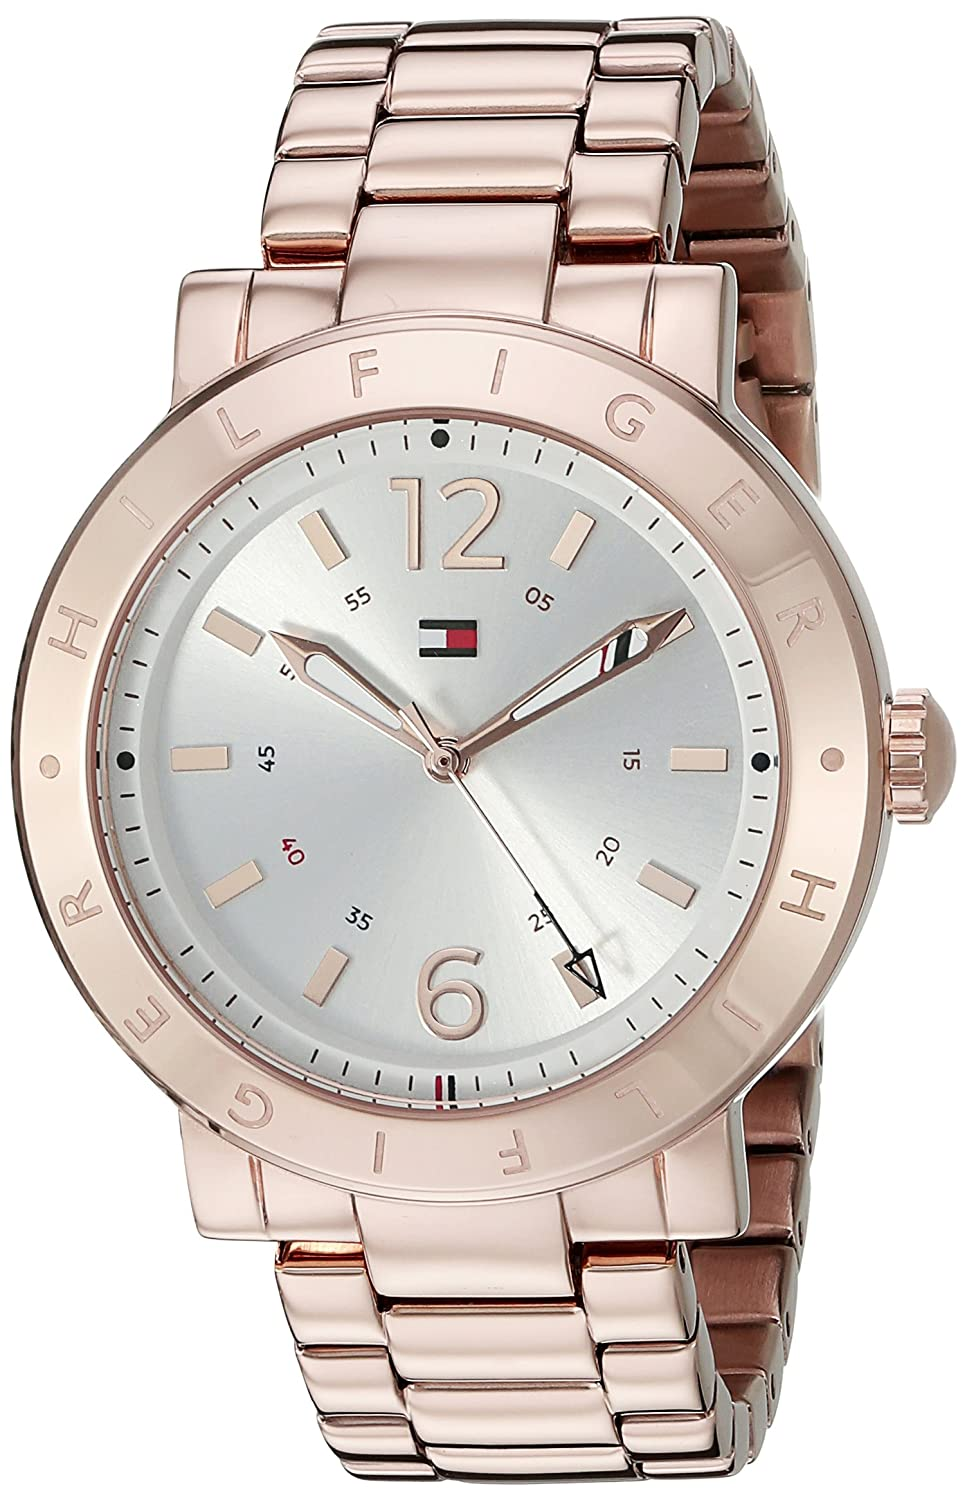 Amazon.com: Tommy Hilfiger Womens 1781621 Casual Sport Analog Display Quartz Rose Gold-Tone Stainless Steel Watch: Tommy Hilfiger: Watches